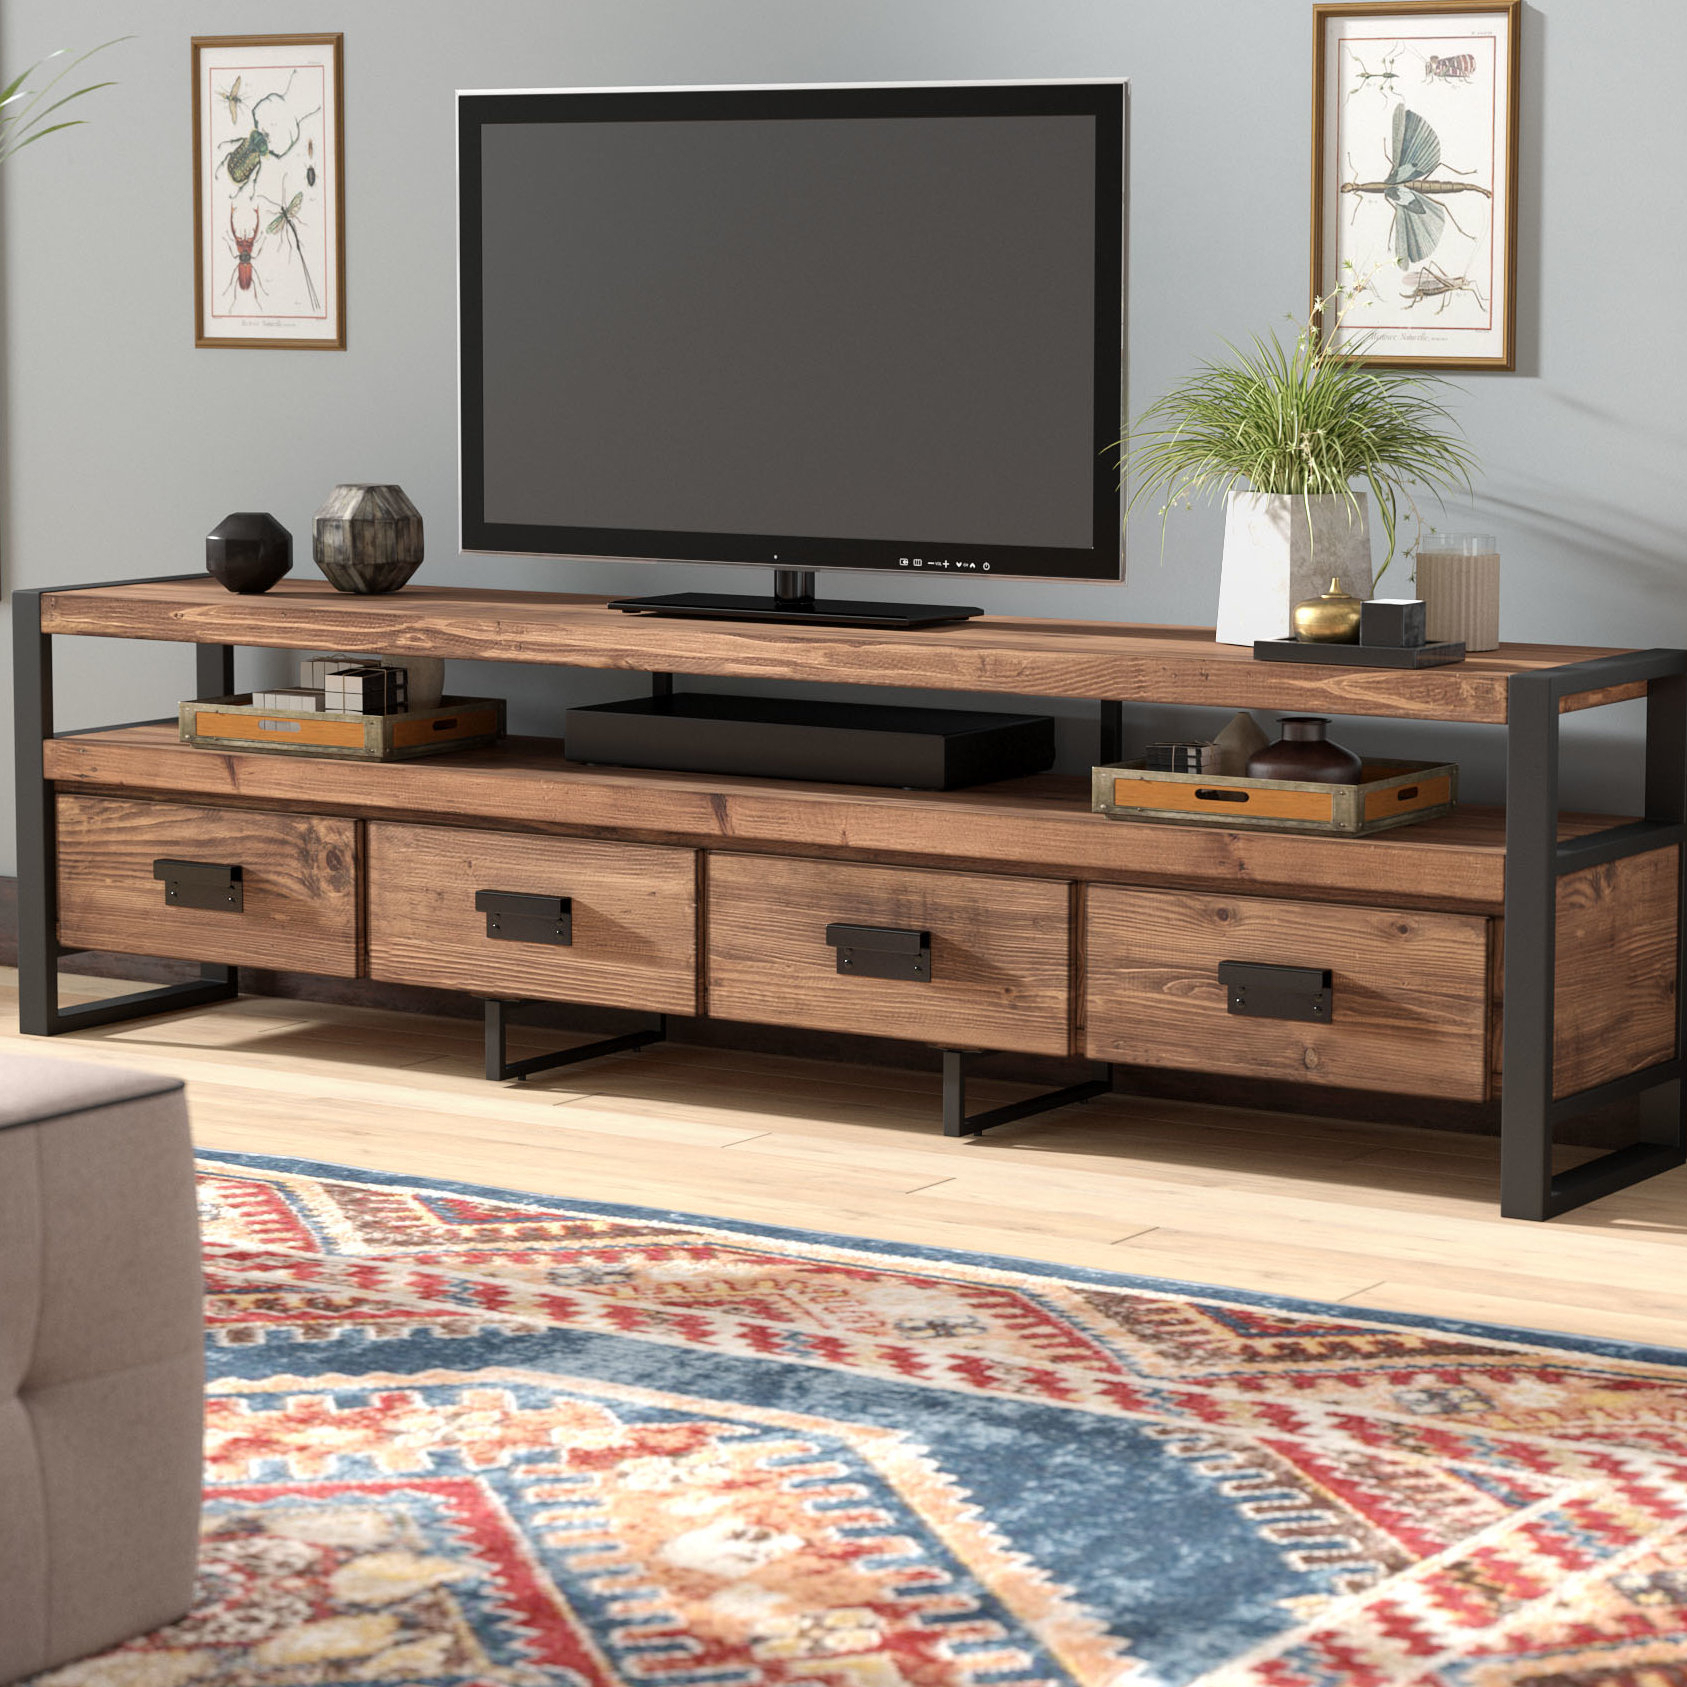 Rustic Tv Stands You'll Love | Wayfair pertaining to Canyon 74 Inch Tv Stands (Image 15 of 30)